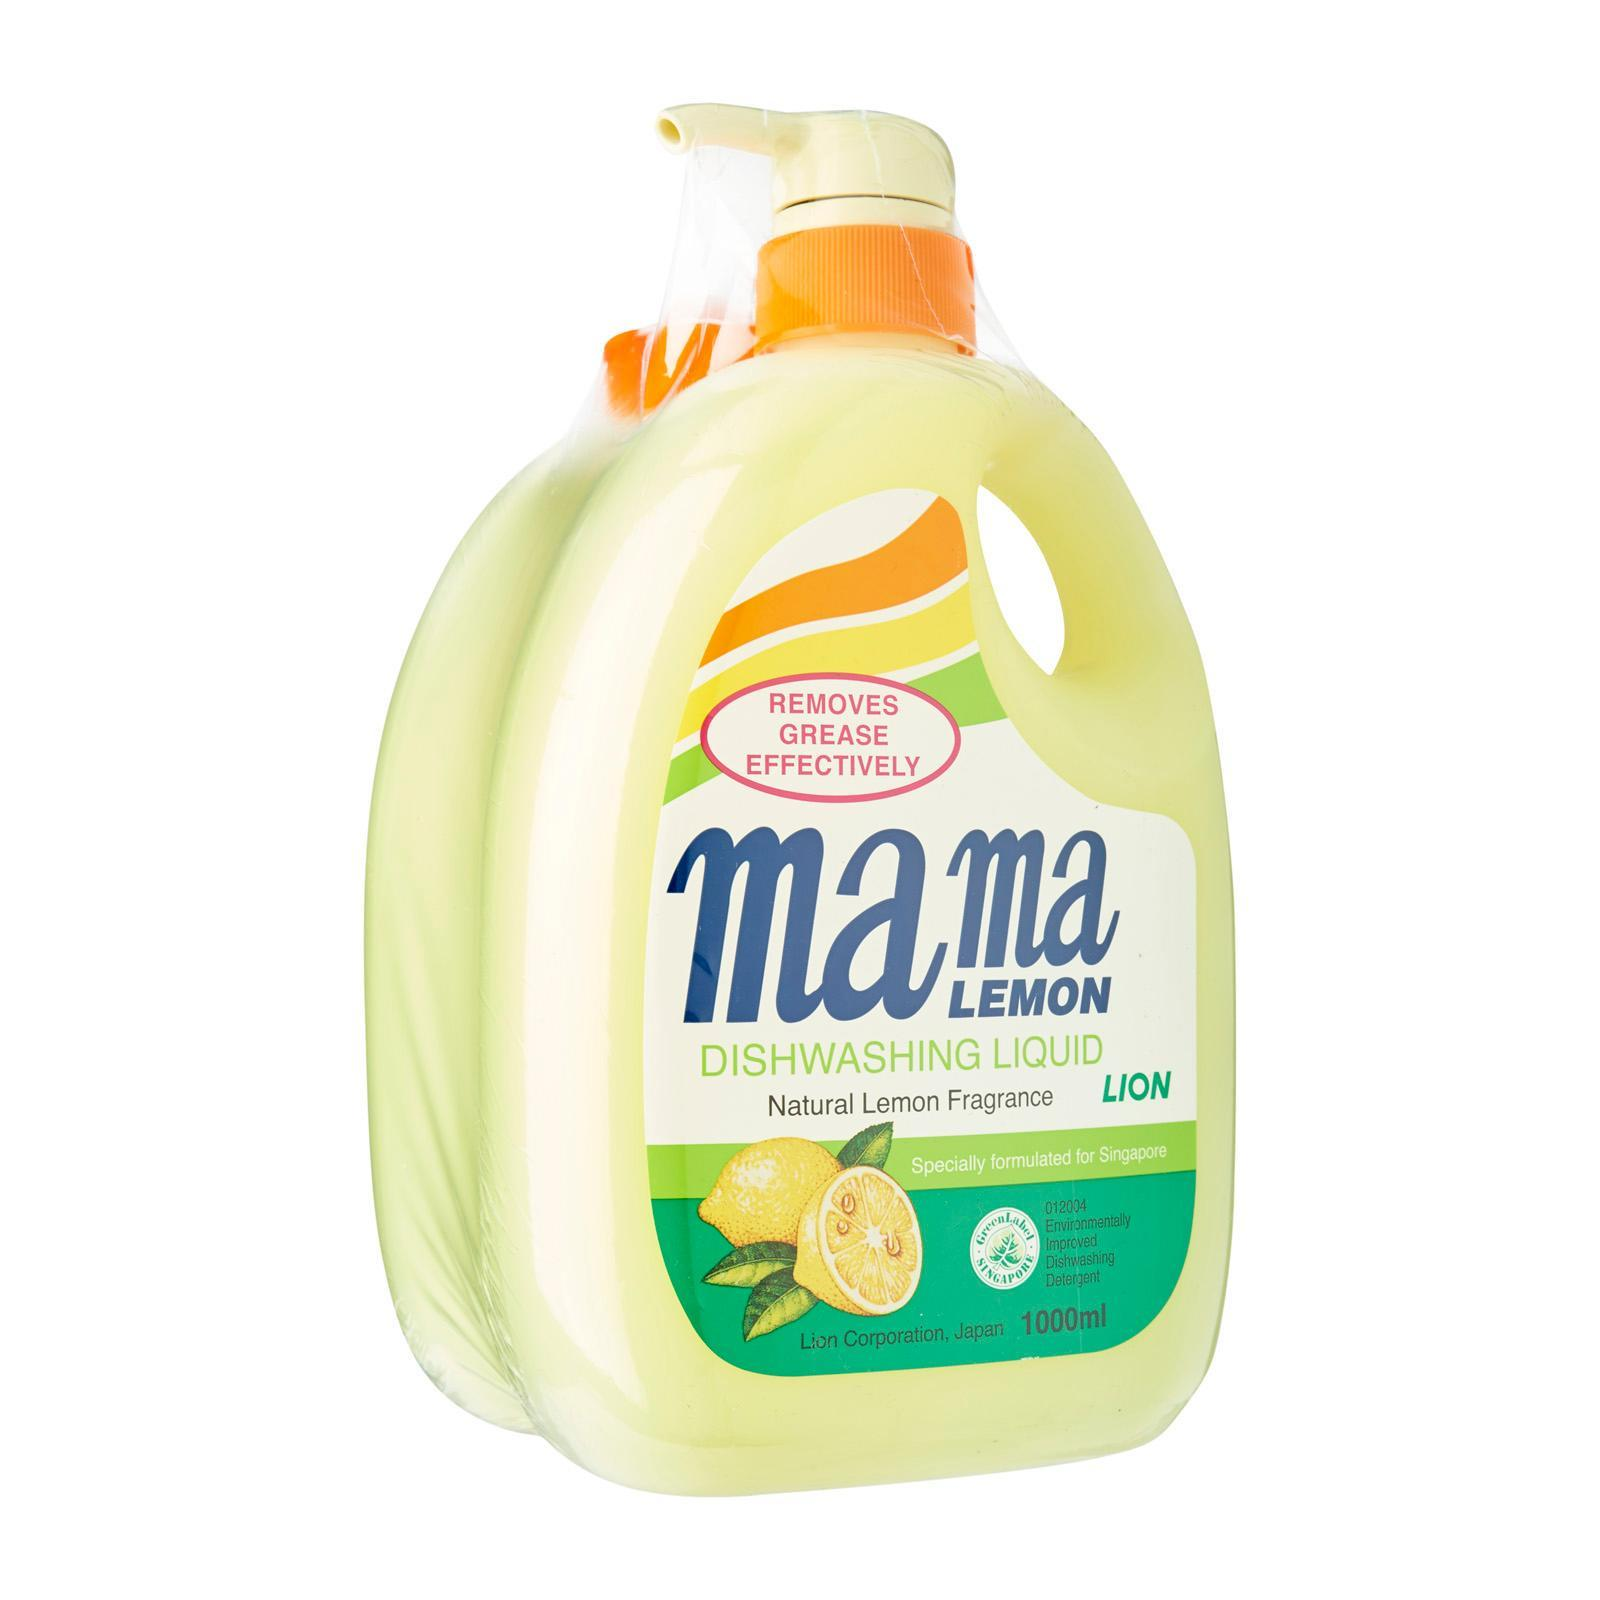 Mama Lemon Natural Lemon Fragrance Dishwashing Liquid with Refill Pack